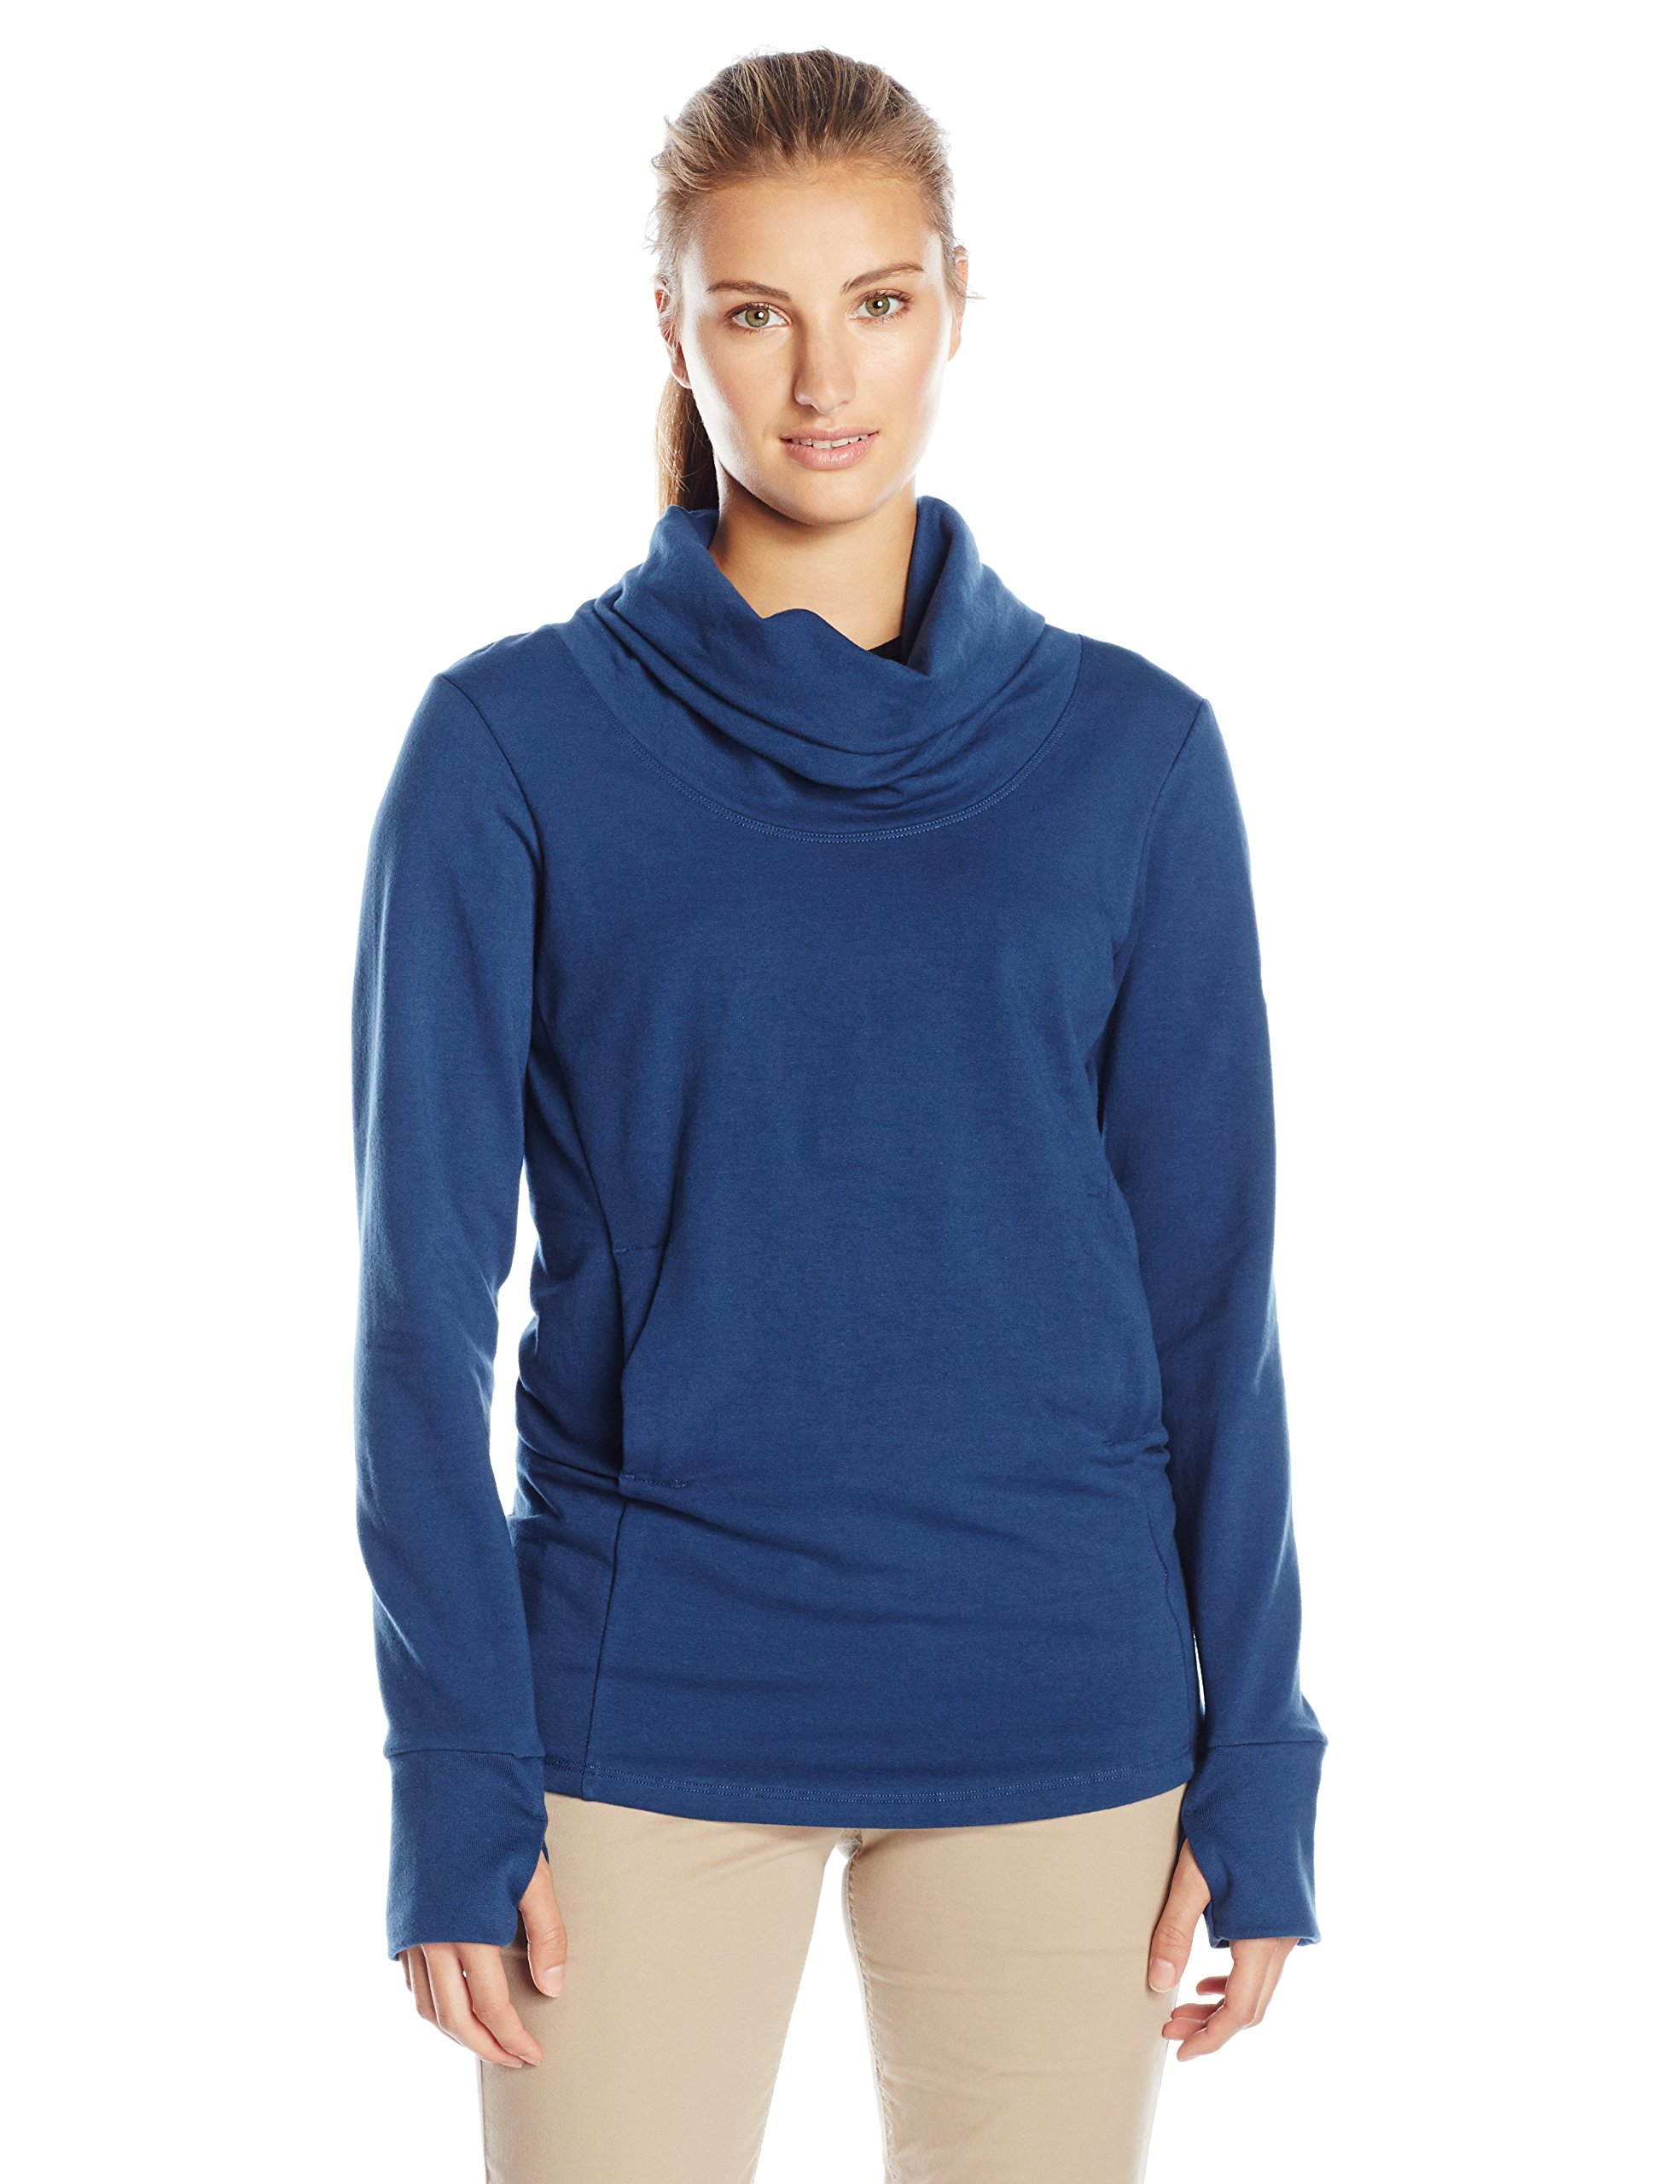 FIG Women's BRU Sweater, X-Large, Jay